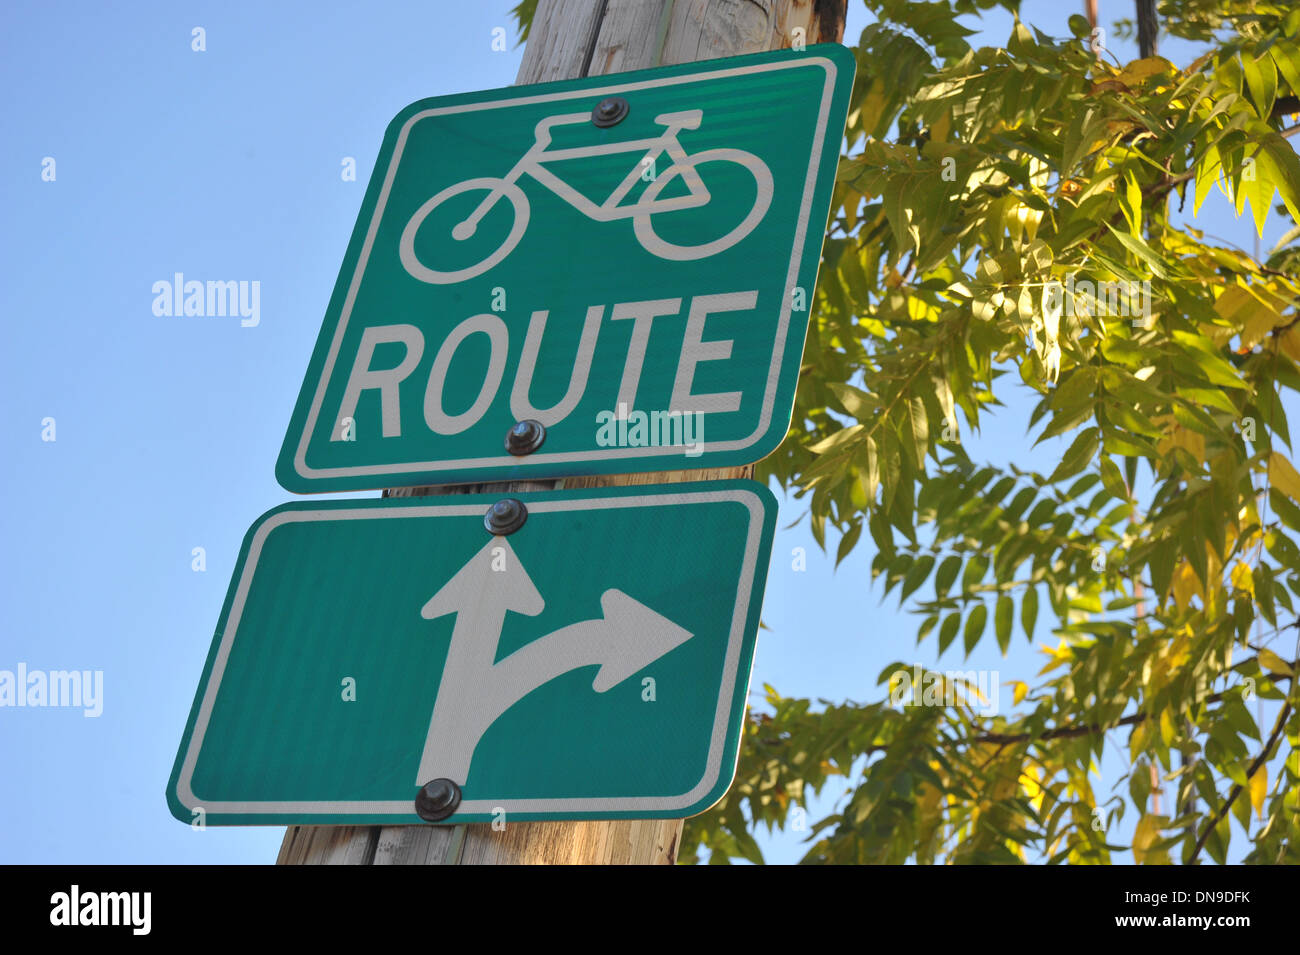 Canadian Road Signs For Motorists And Cyclists Stock Photo Alamy